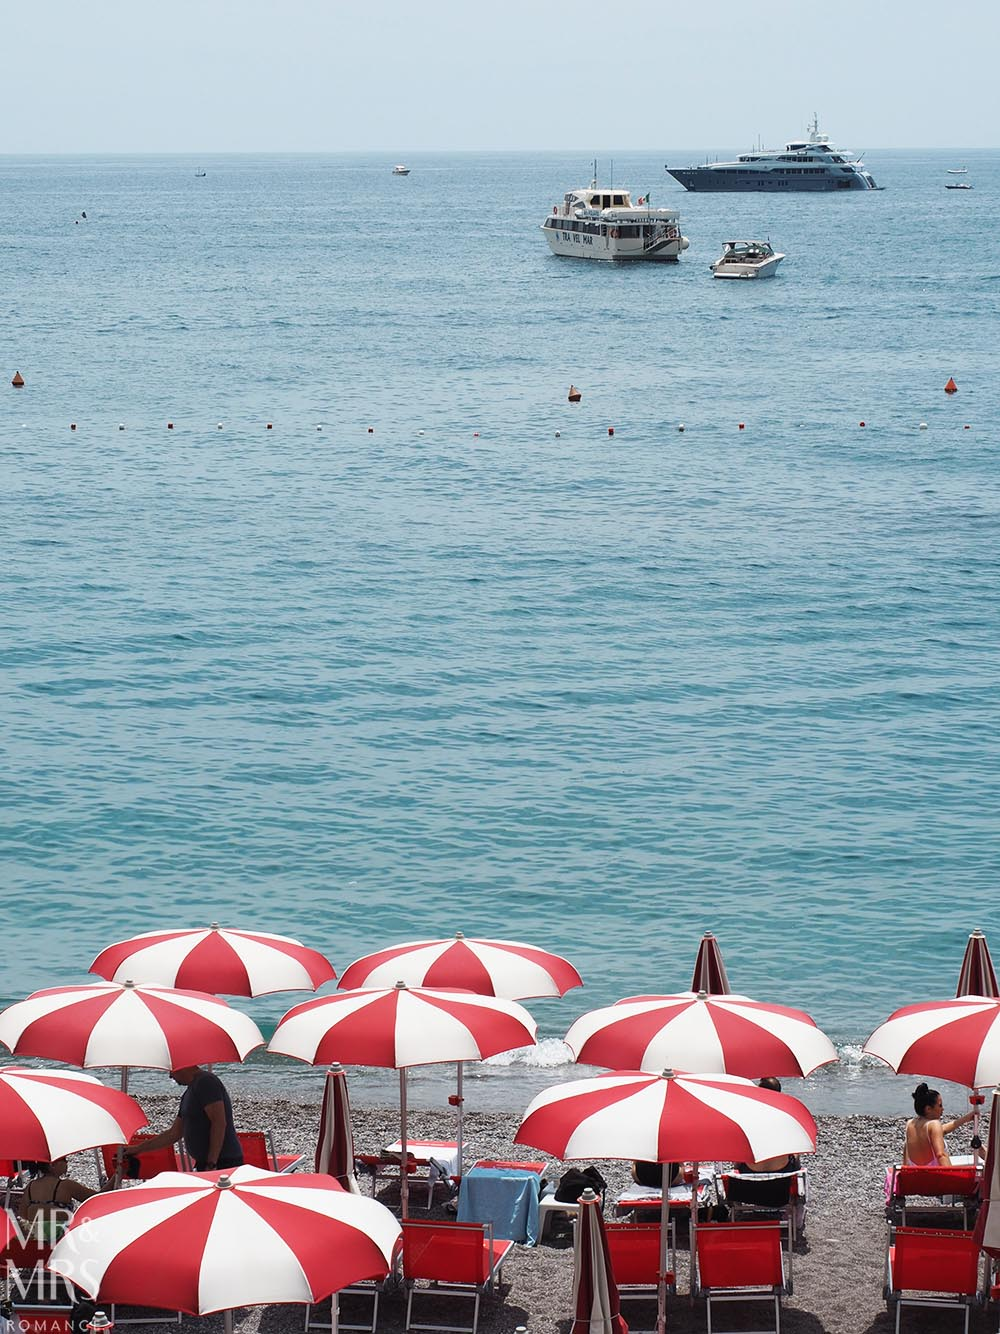 Red umbrellas and boats Amalfi Coast